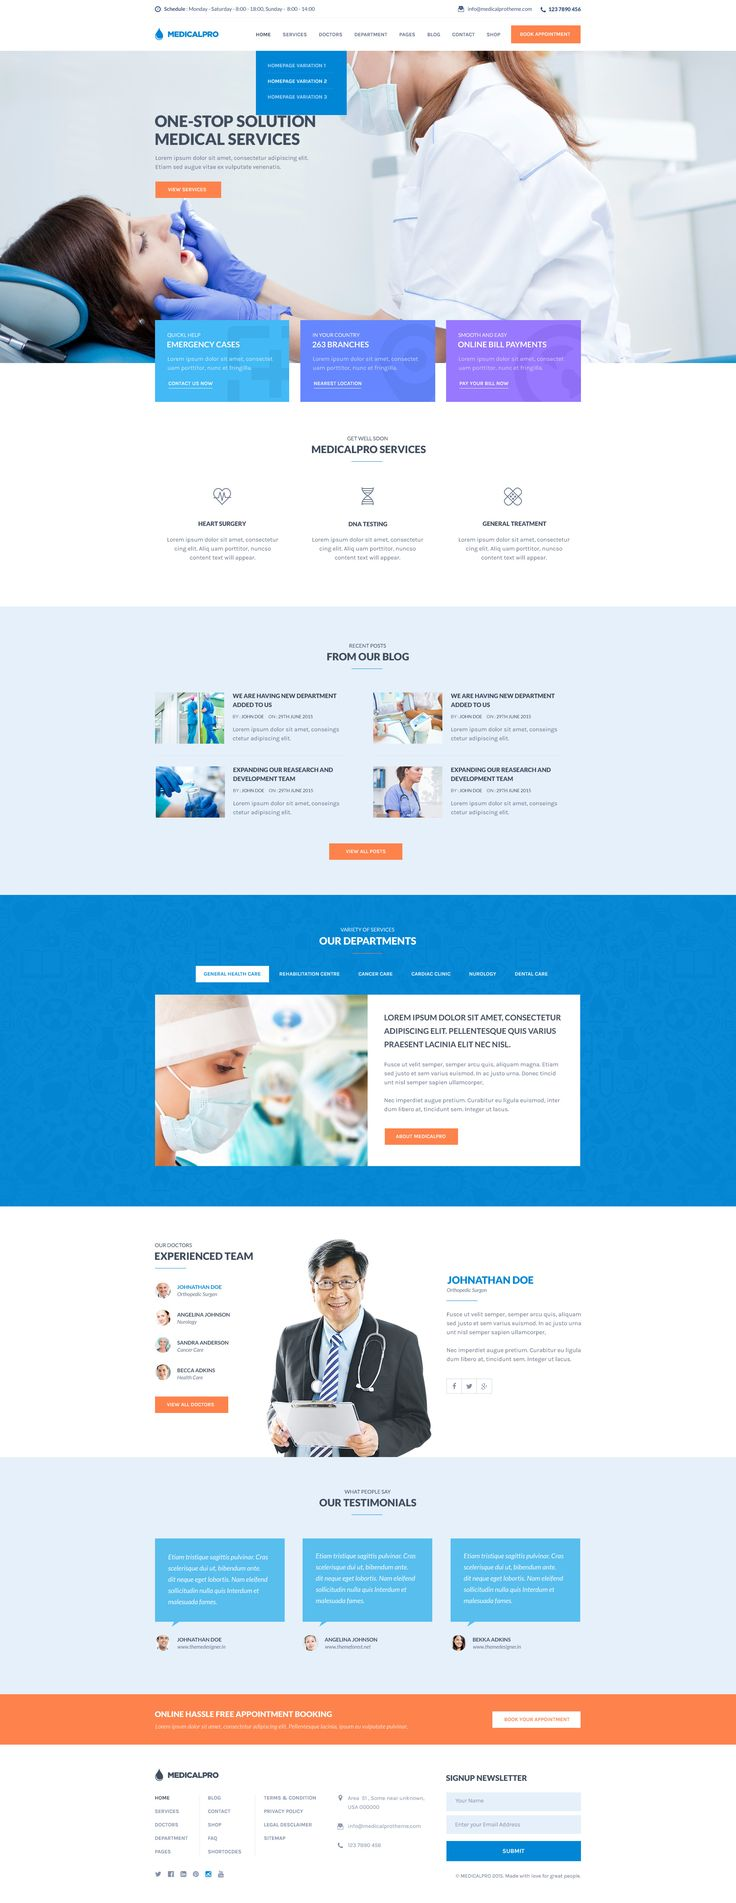 It is a highly suitable theme for doctors, dentists, hospitals, health clinics, surgeons, gynecologist and other type of health and medical related organizations.